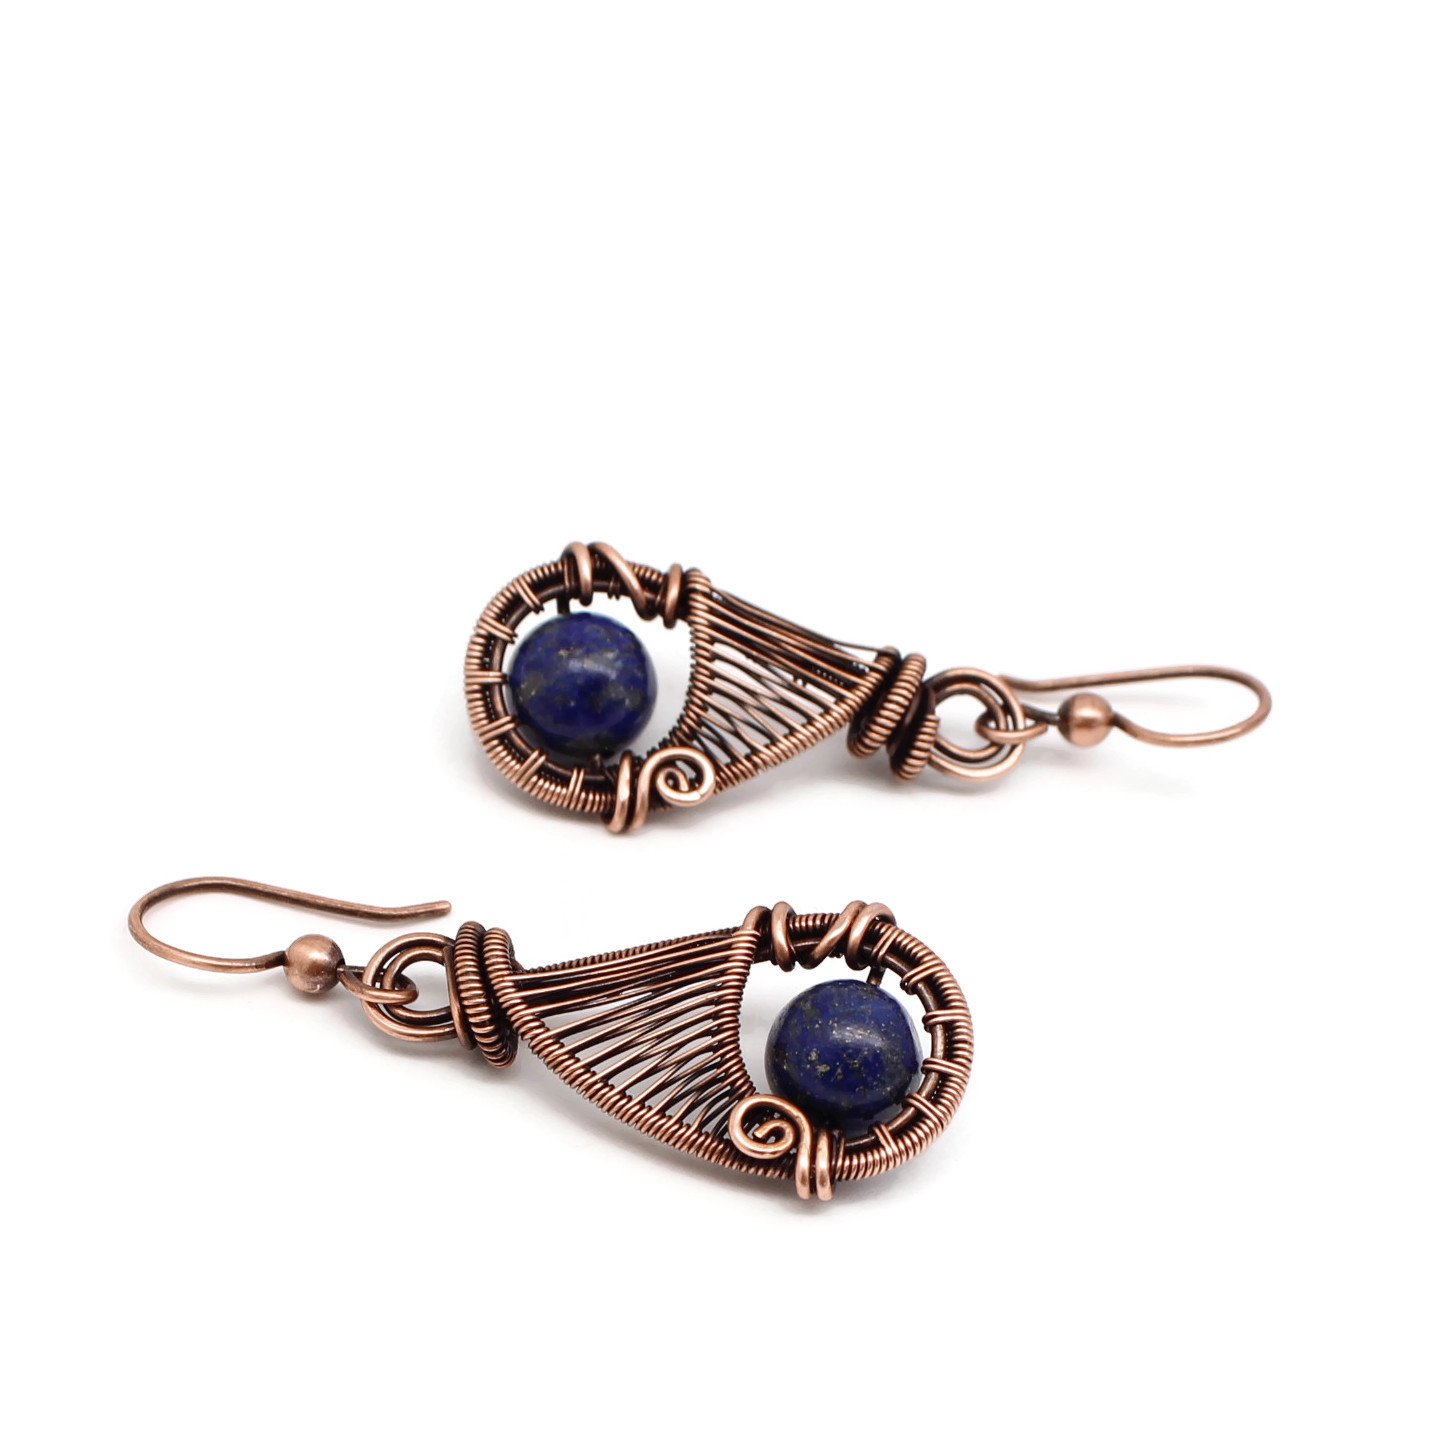 Copper wire wrapped earrings with blue lapis stones.